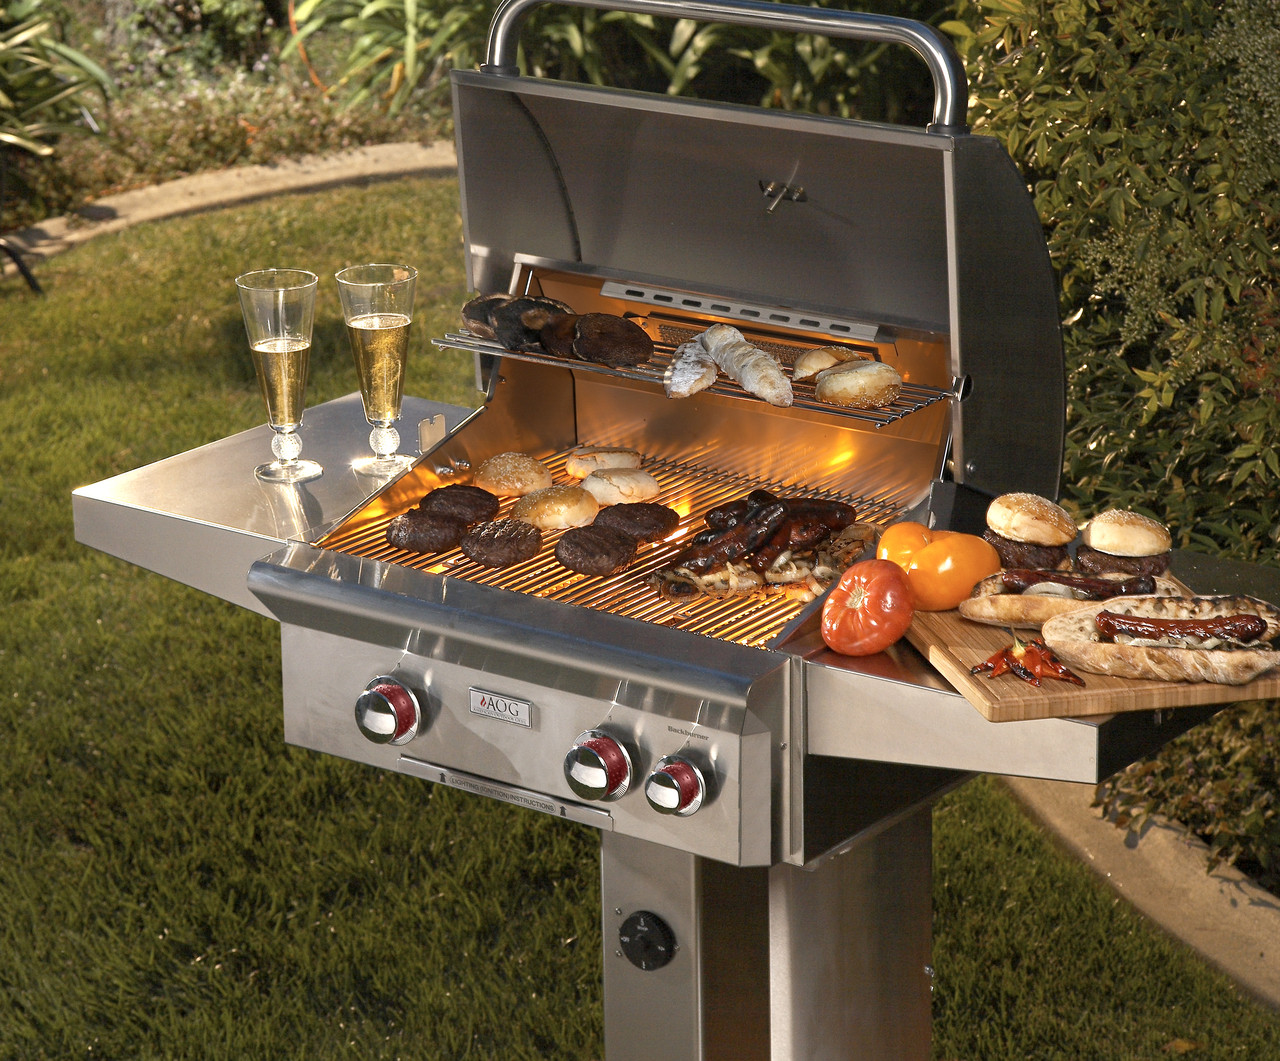 Designed for condos, apartments, or anywhere space